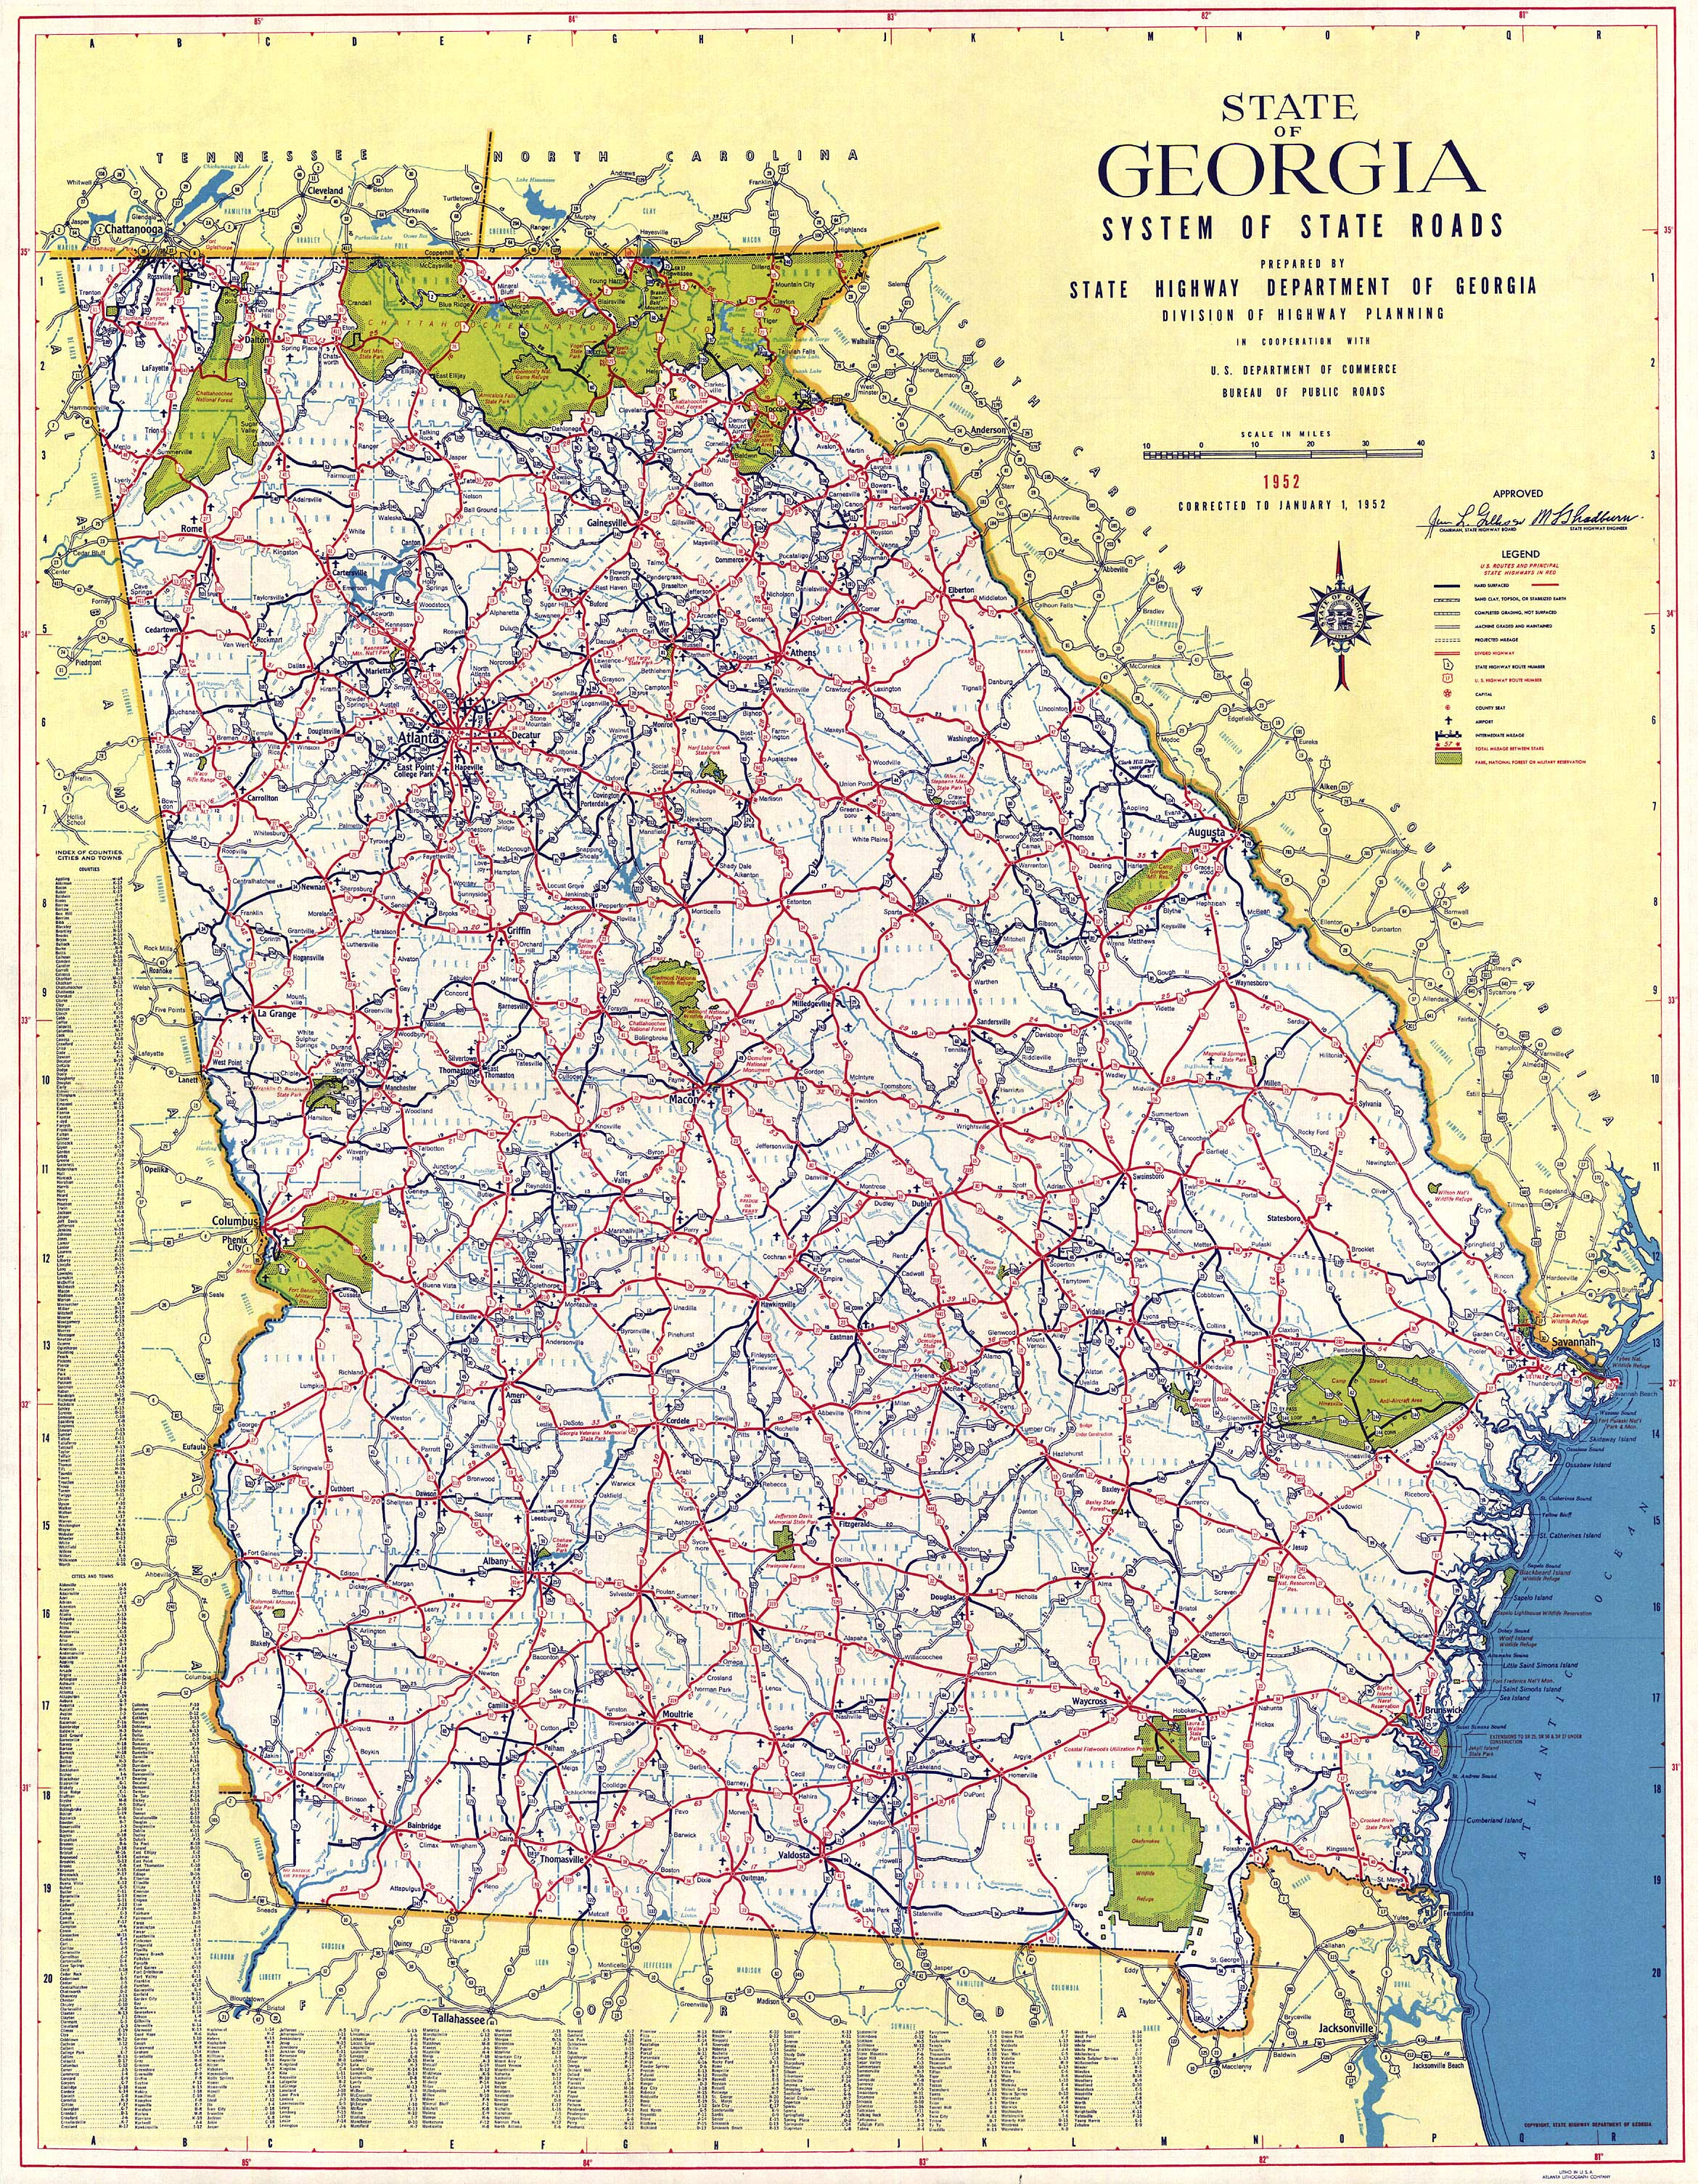 Georgia Road Map Georgia Mappery - Road map georgia